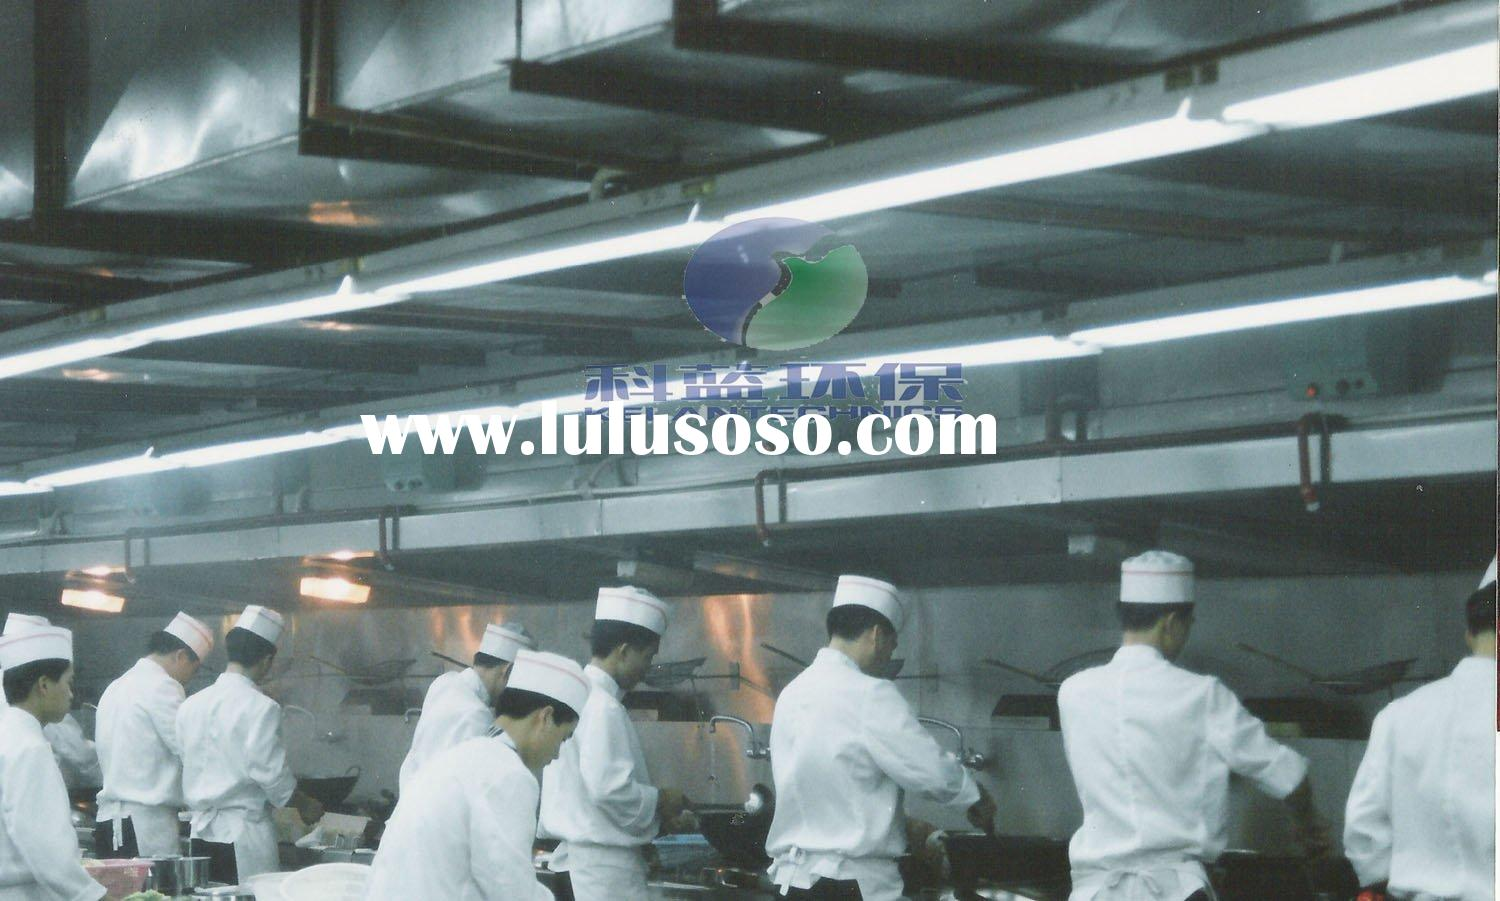 Ss Commercial : stainless steel kitchen commercial vent hood, stainless steel kitchen ...